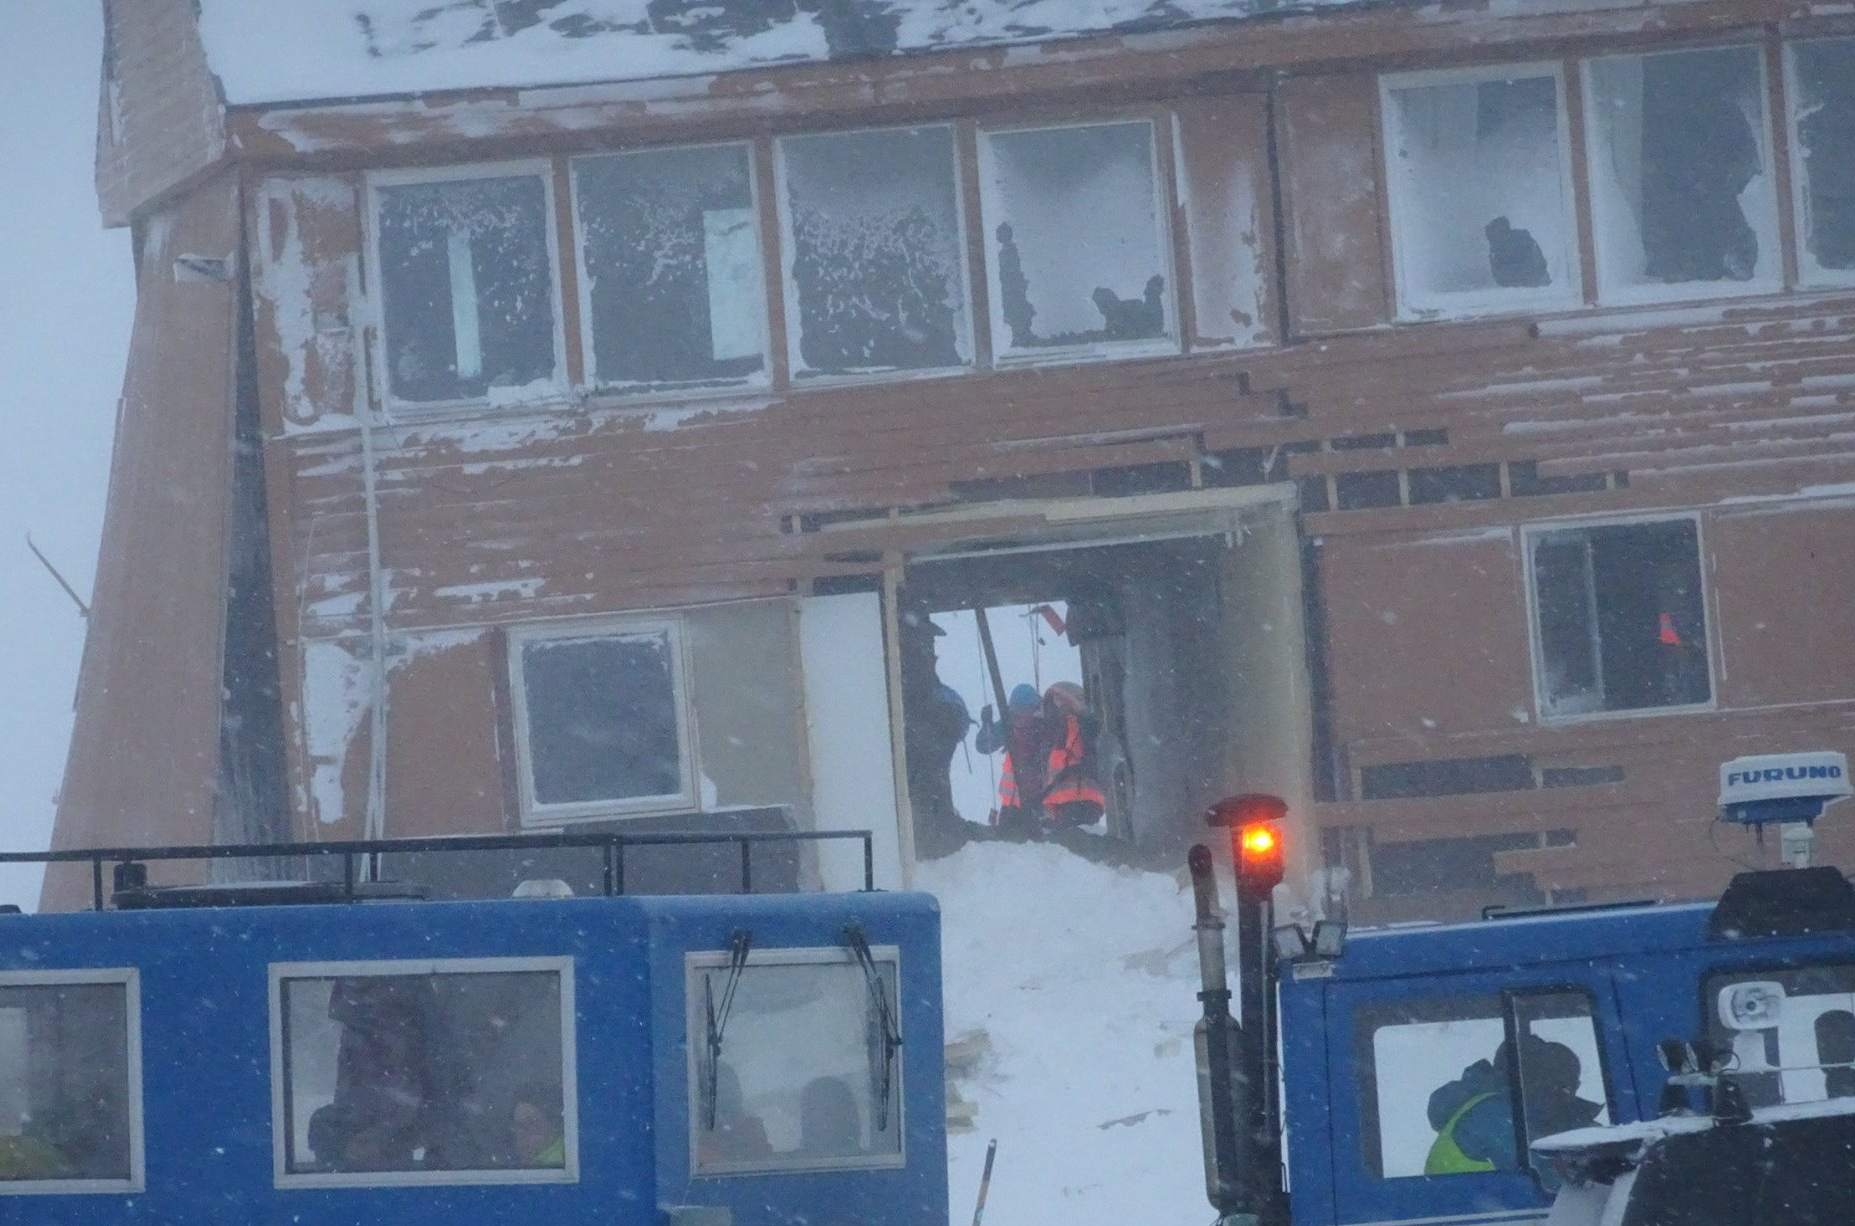 WARNING SIGNS: Another major avalanche shatters people's faith in official alert system as well as homes